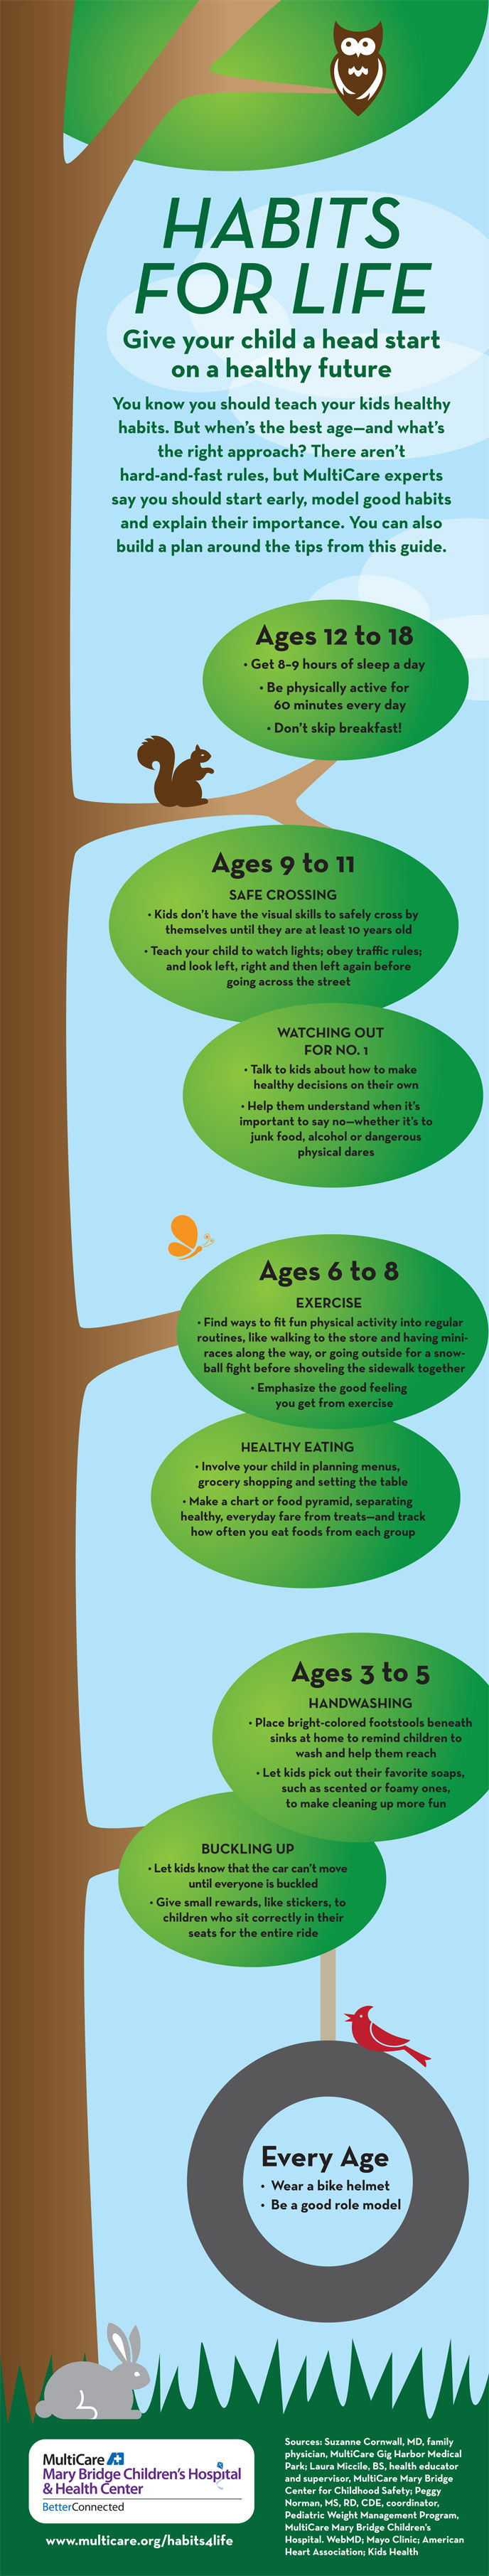 Give Your Child A Head Start On A Healthy Future Habits For Life Health Habits Kids Health Health Words